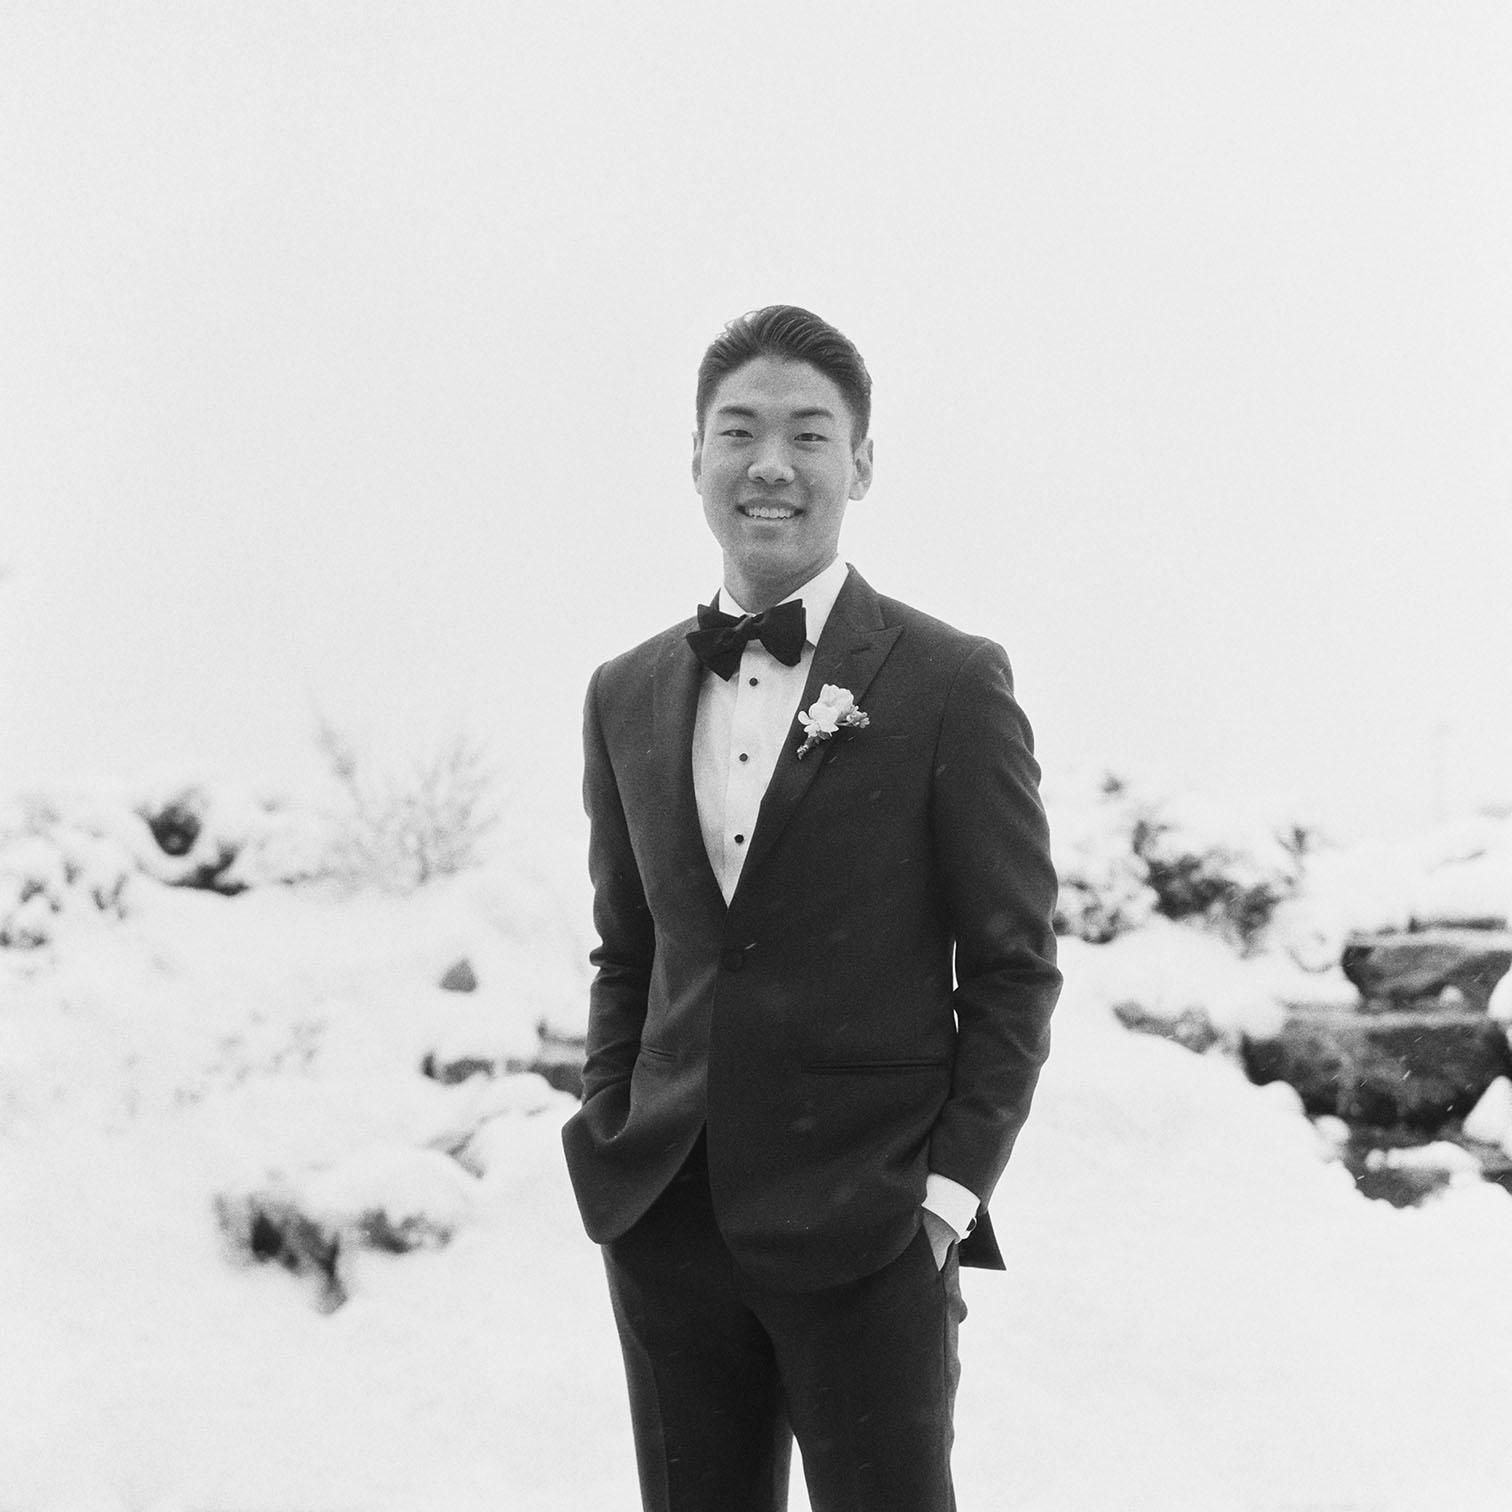 Colorado Wedding Photography, Black Tie Winter Weddings